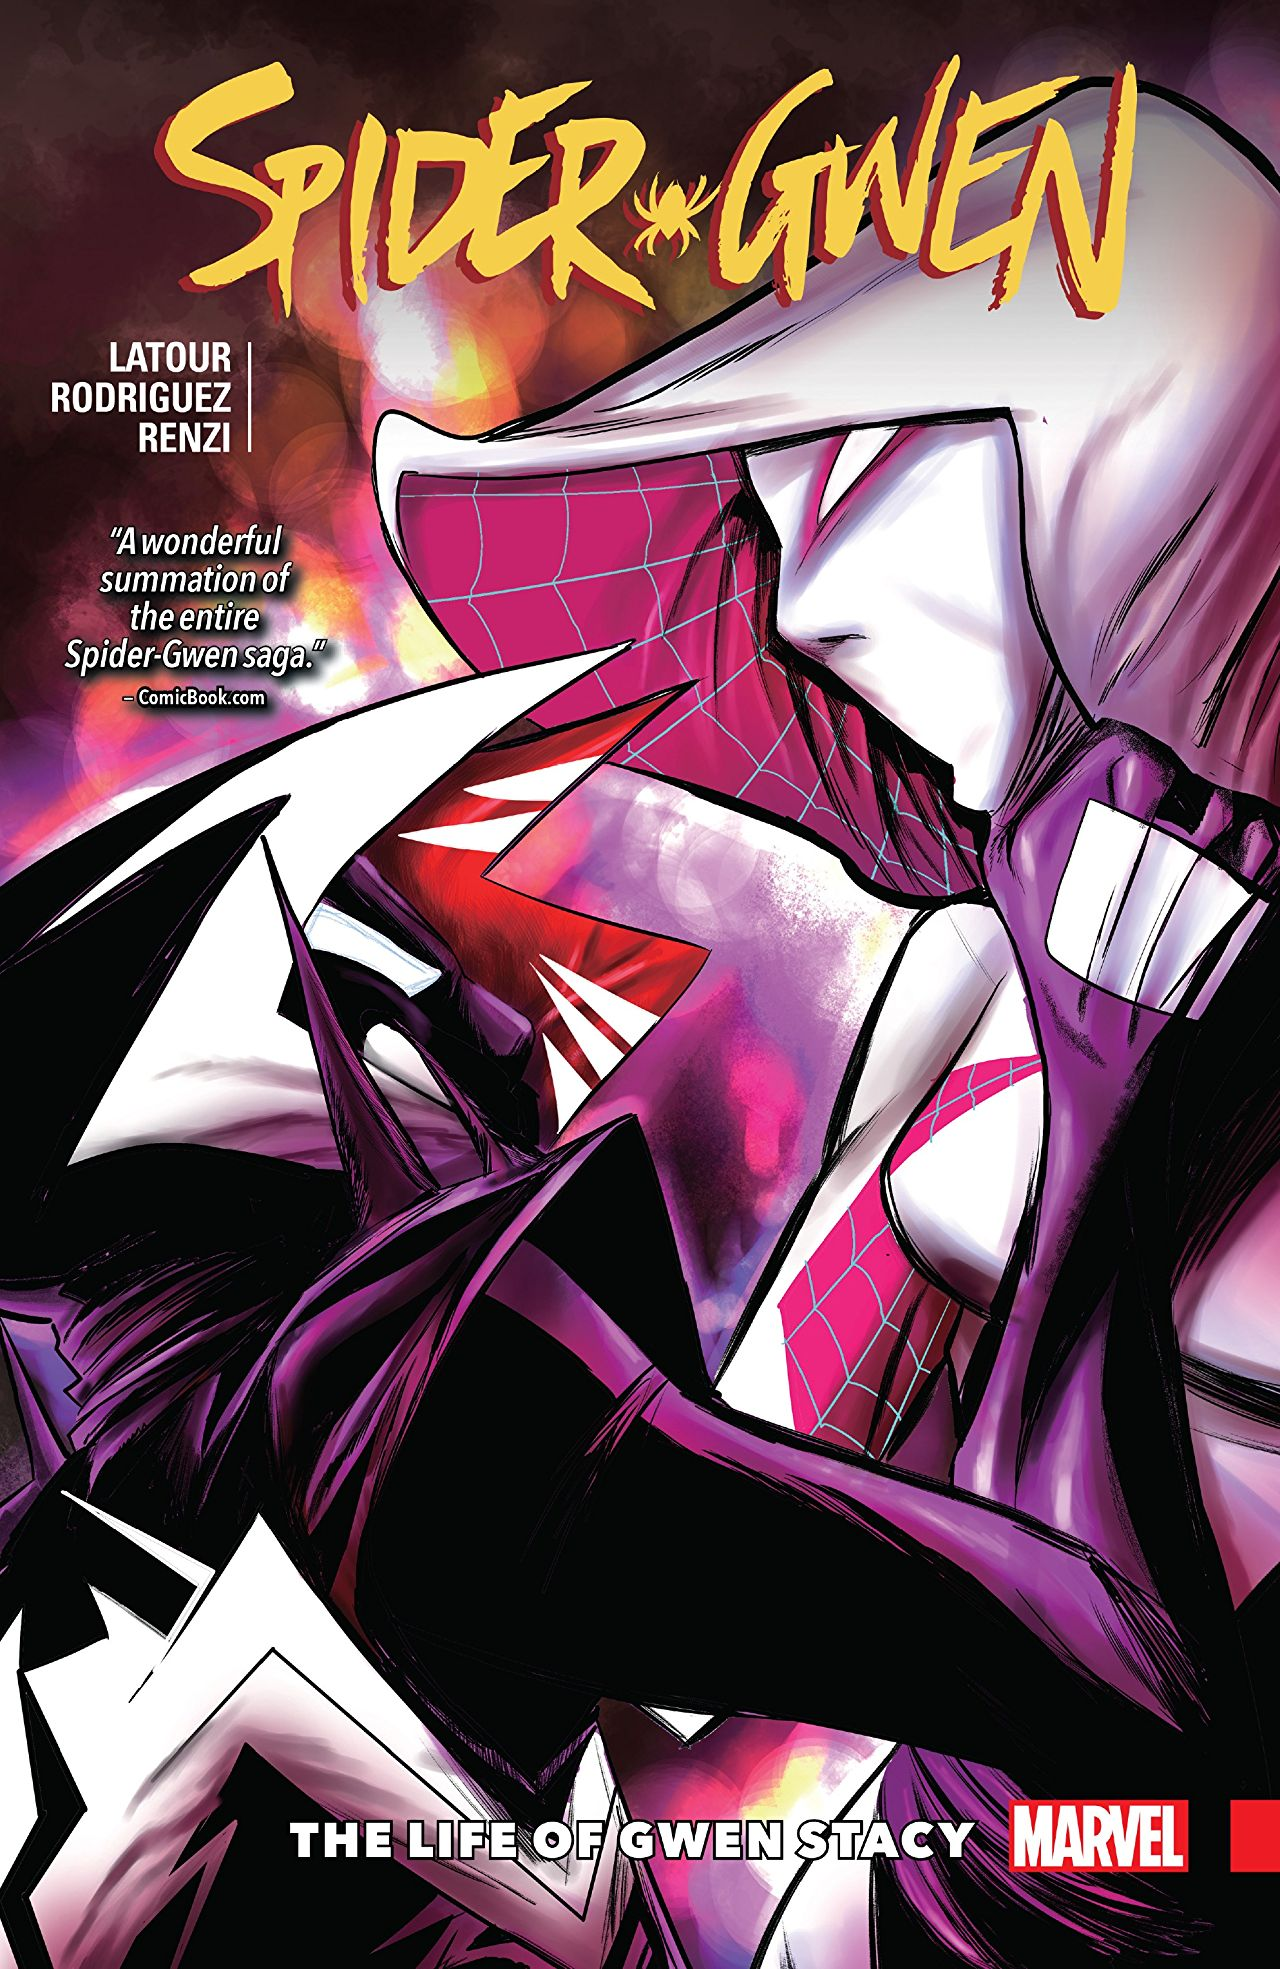 'Spider-Gwen Vol. 6: The Life of Gwen Stacy' puts Gwen at peace with who and what she is